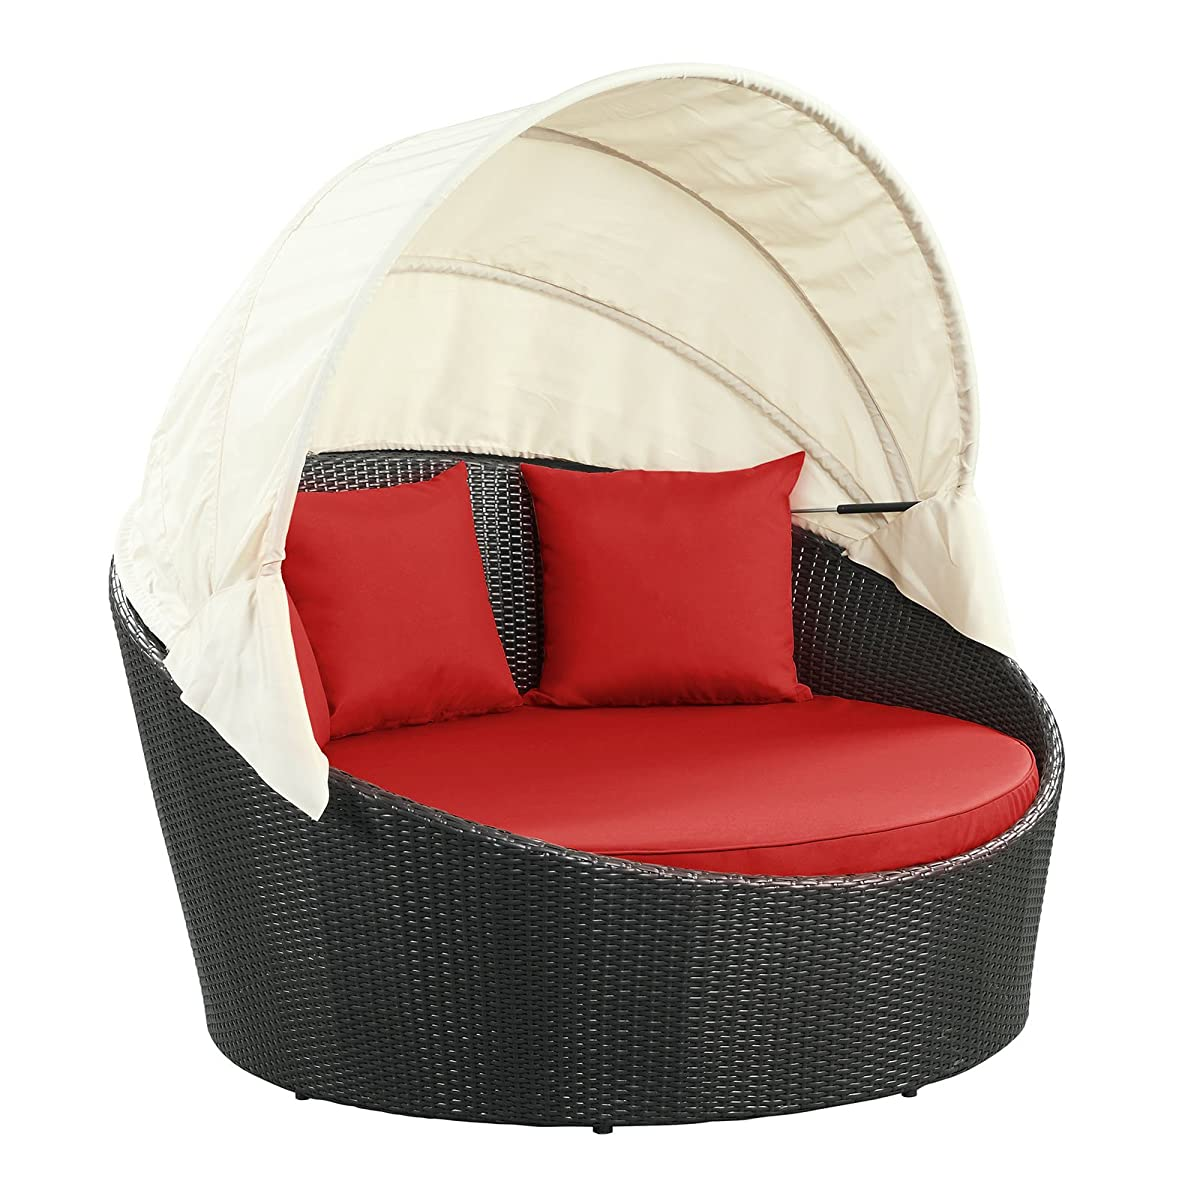 Modway Siesta Outdoor Wicker Patio Espresso Canopy Bed with Red Cushions